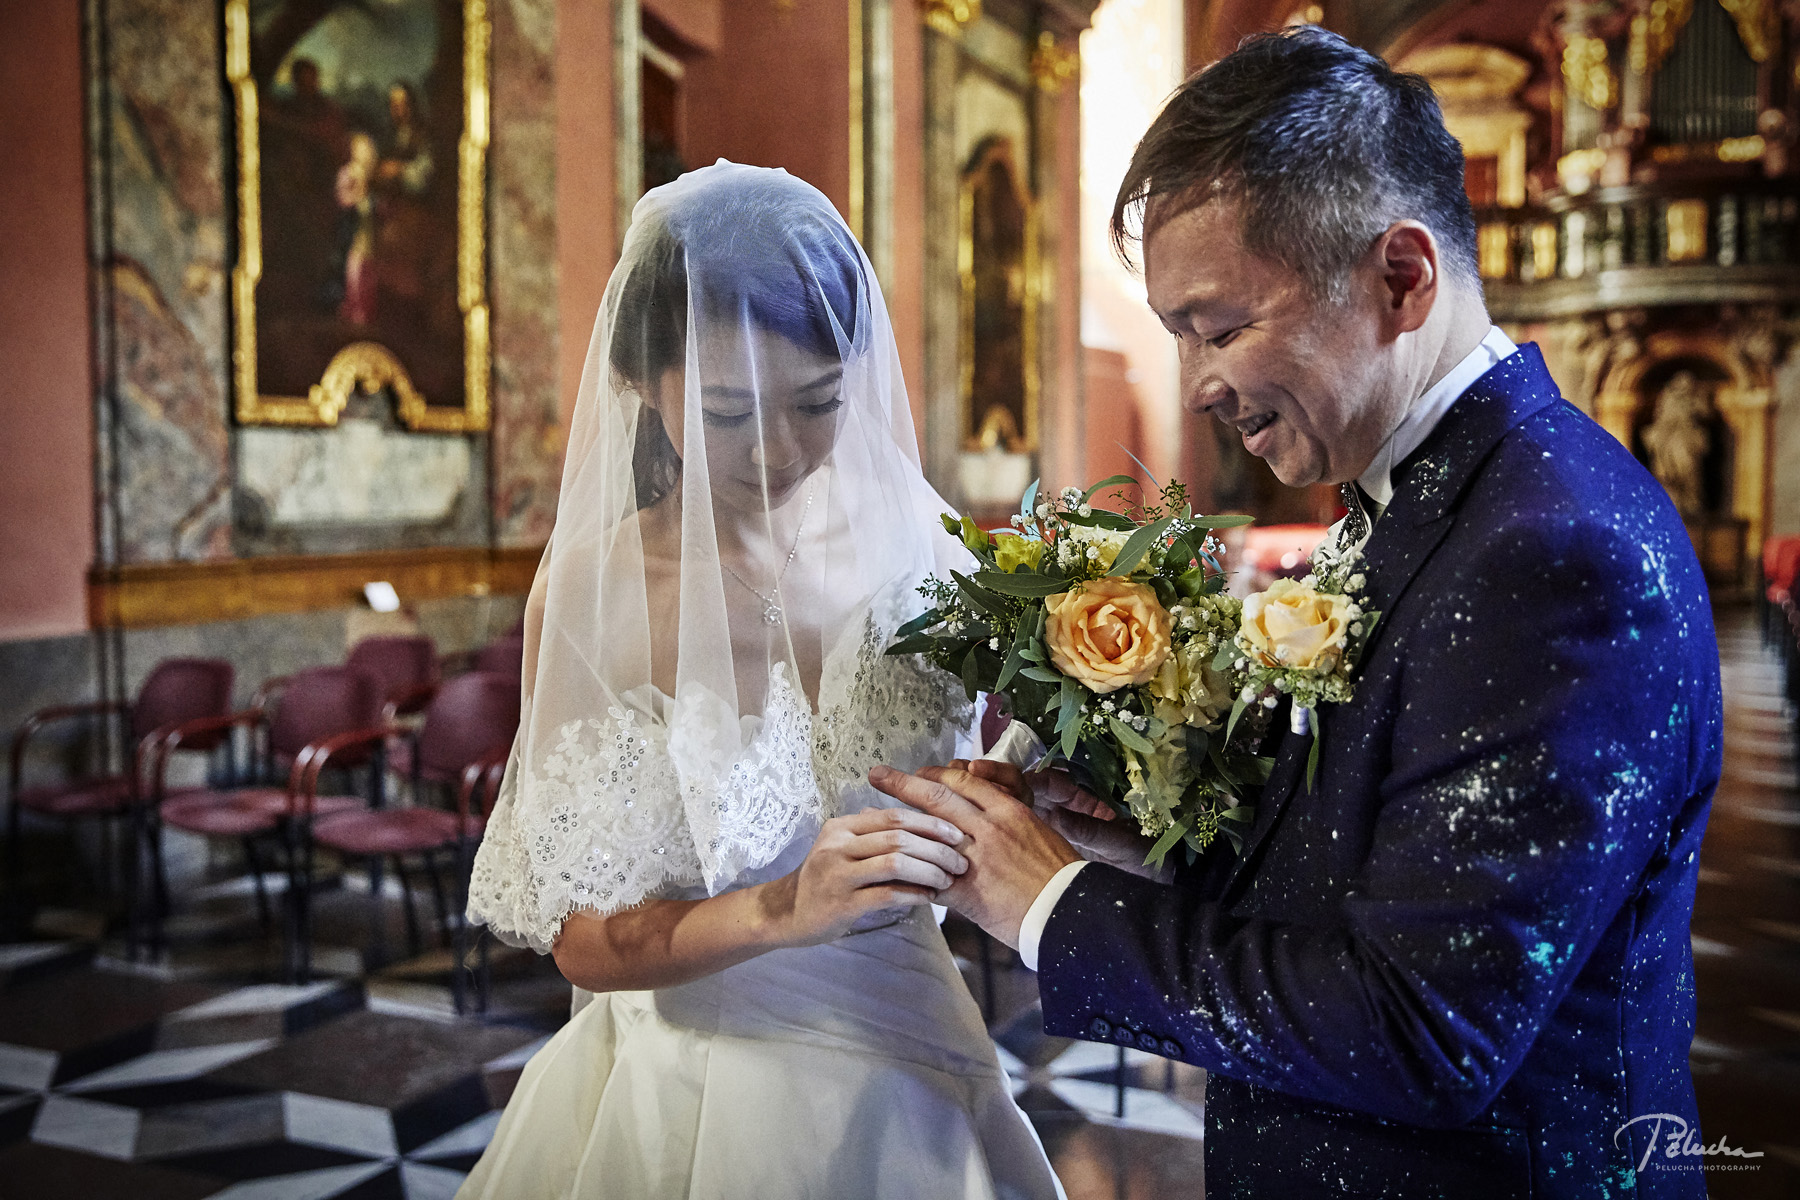 Getting married in Prague